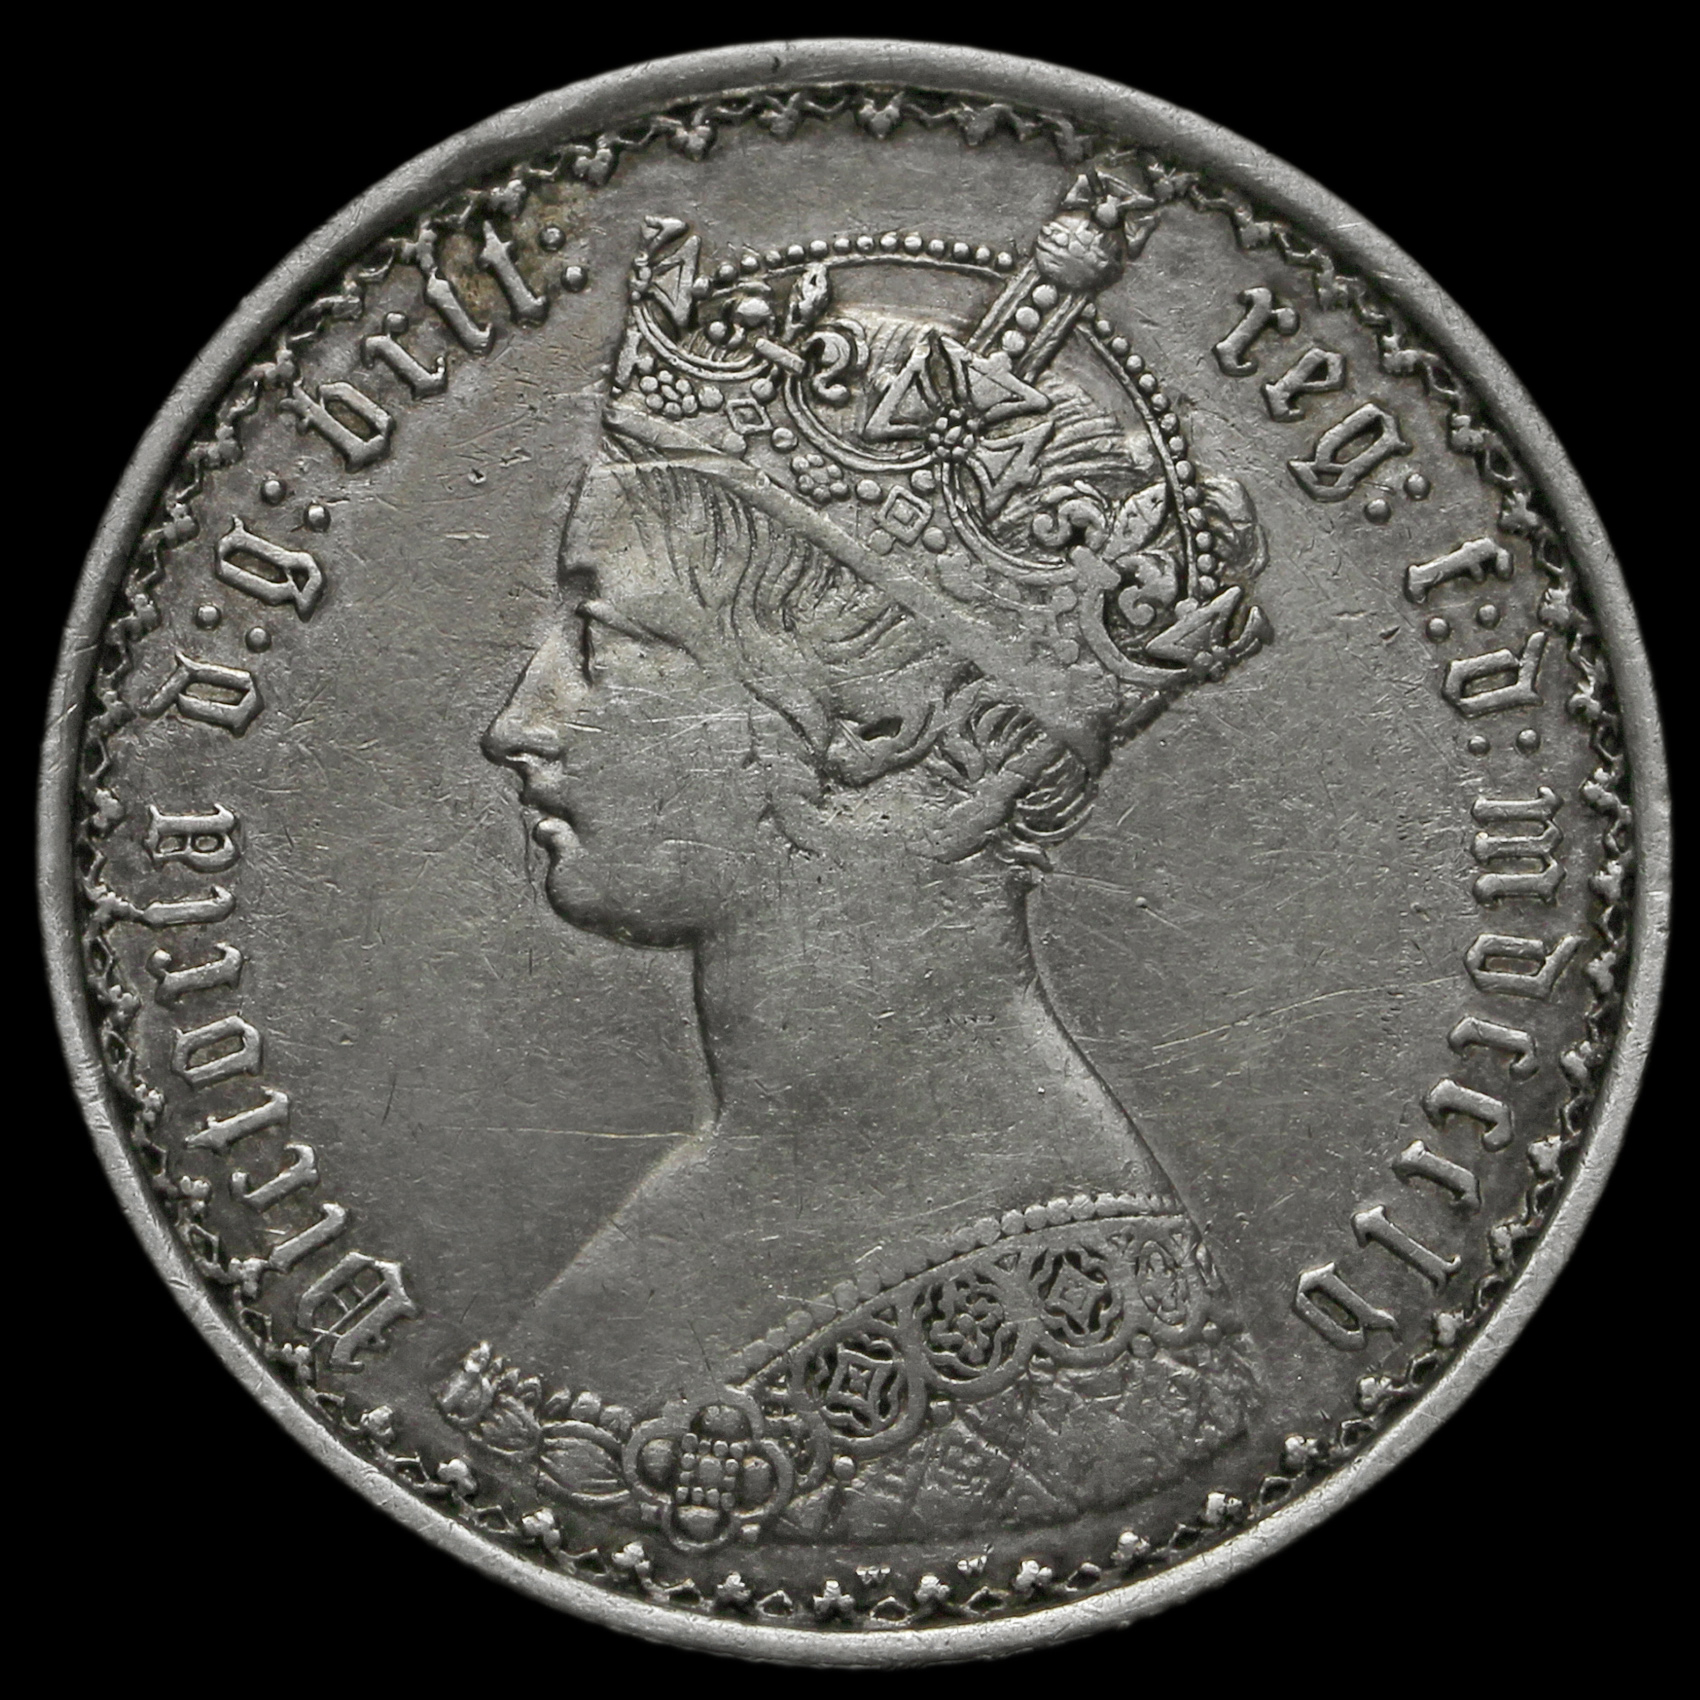 1855 Queen Victoria Gothic Florin, Rare Onc Tenth in Legend Variety